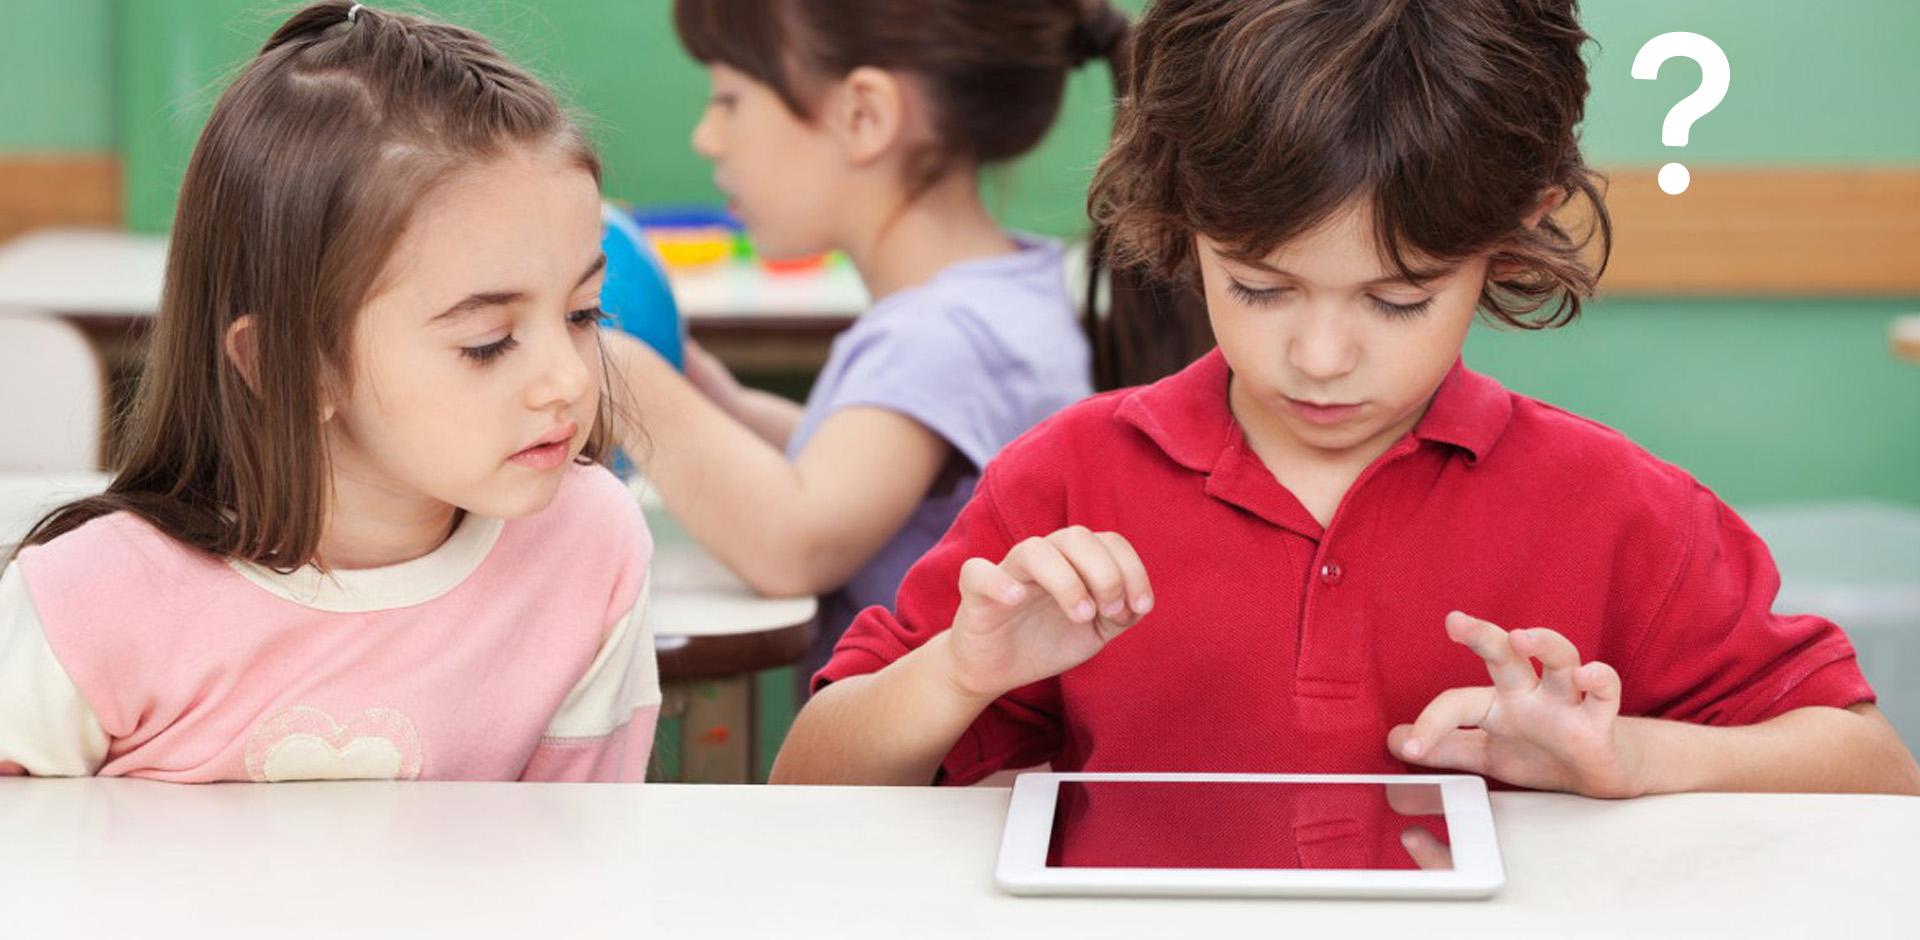 Can An Educational App Actually Help your Child Learn?